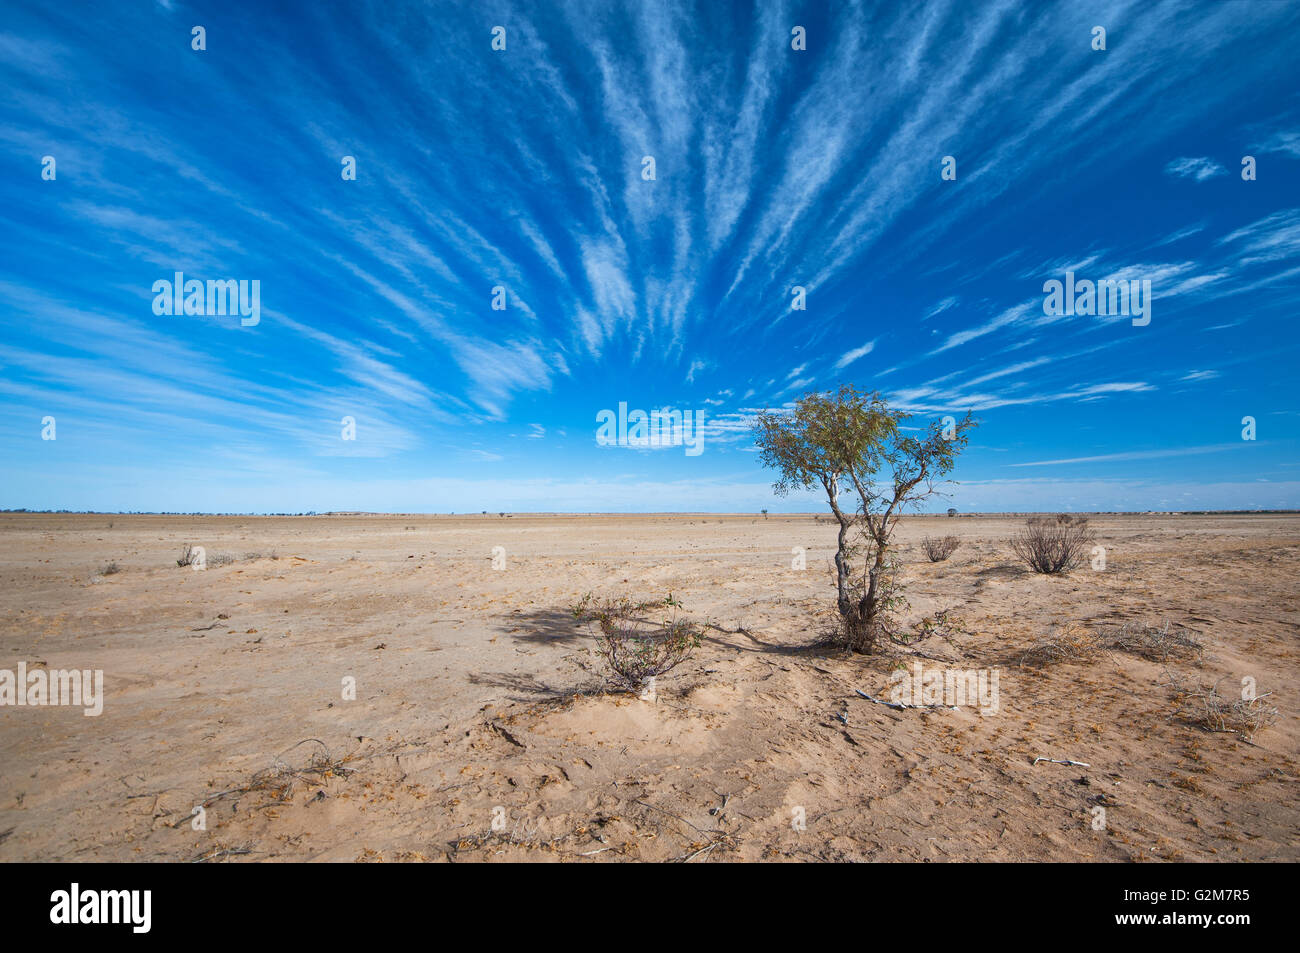 Barren wasteland in the far south-west desert of Queensland. - Stock Image